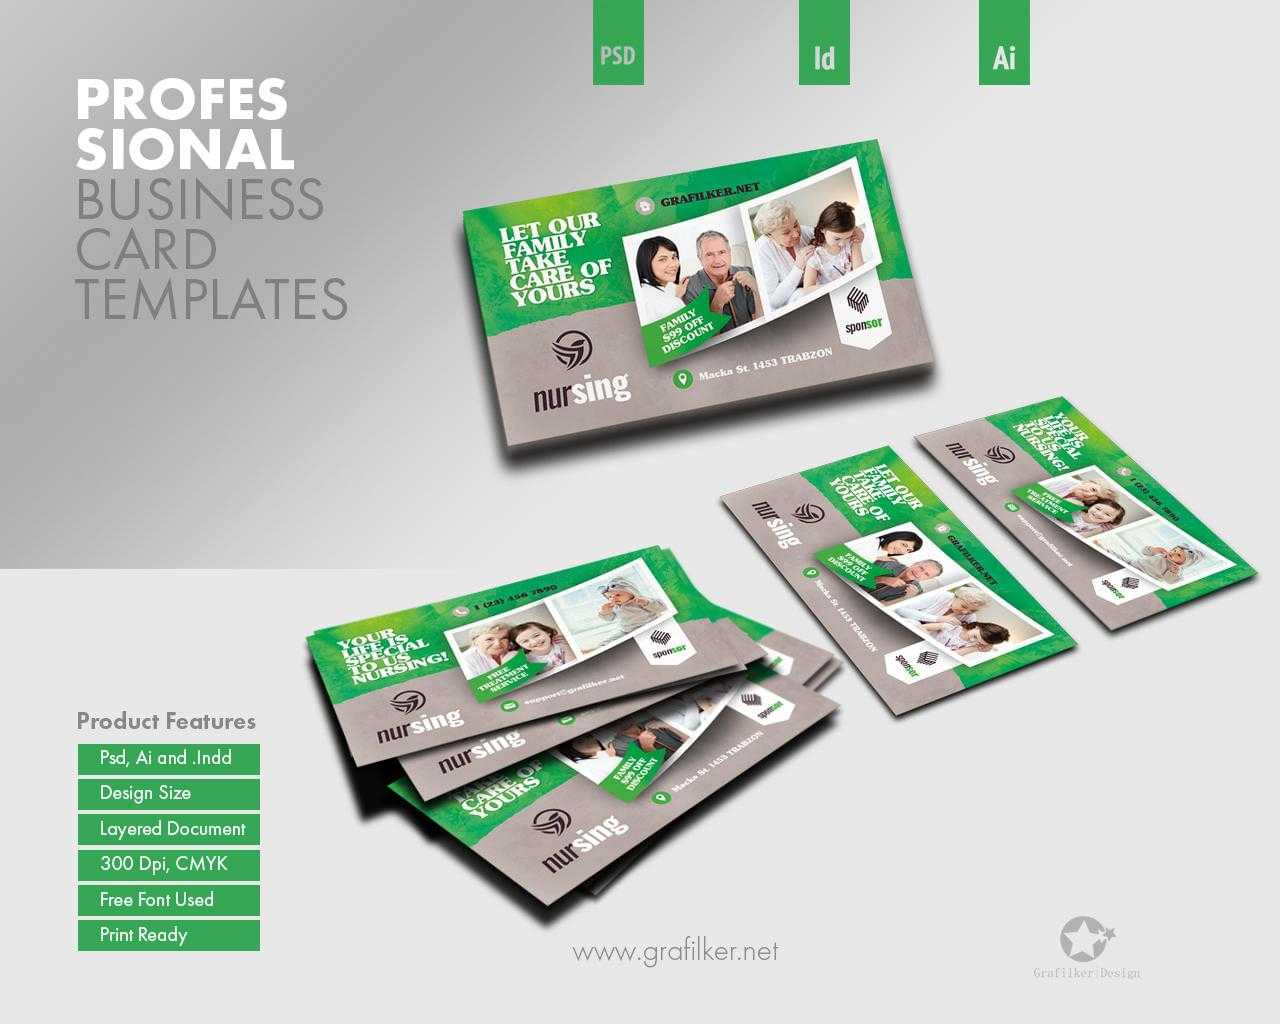 Professional Business Card Templatesgrafilker On Envato With Advertising Cards Templates